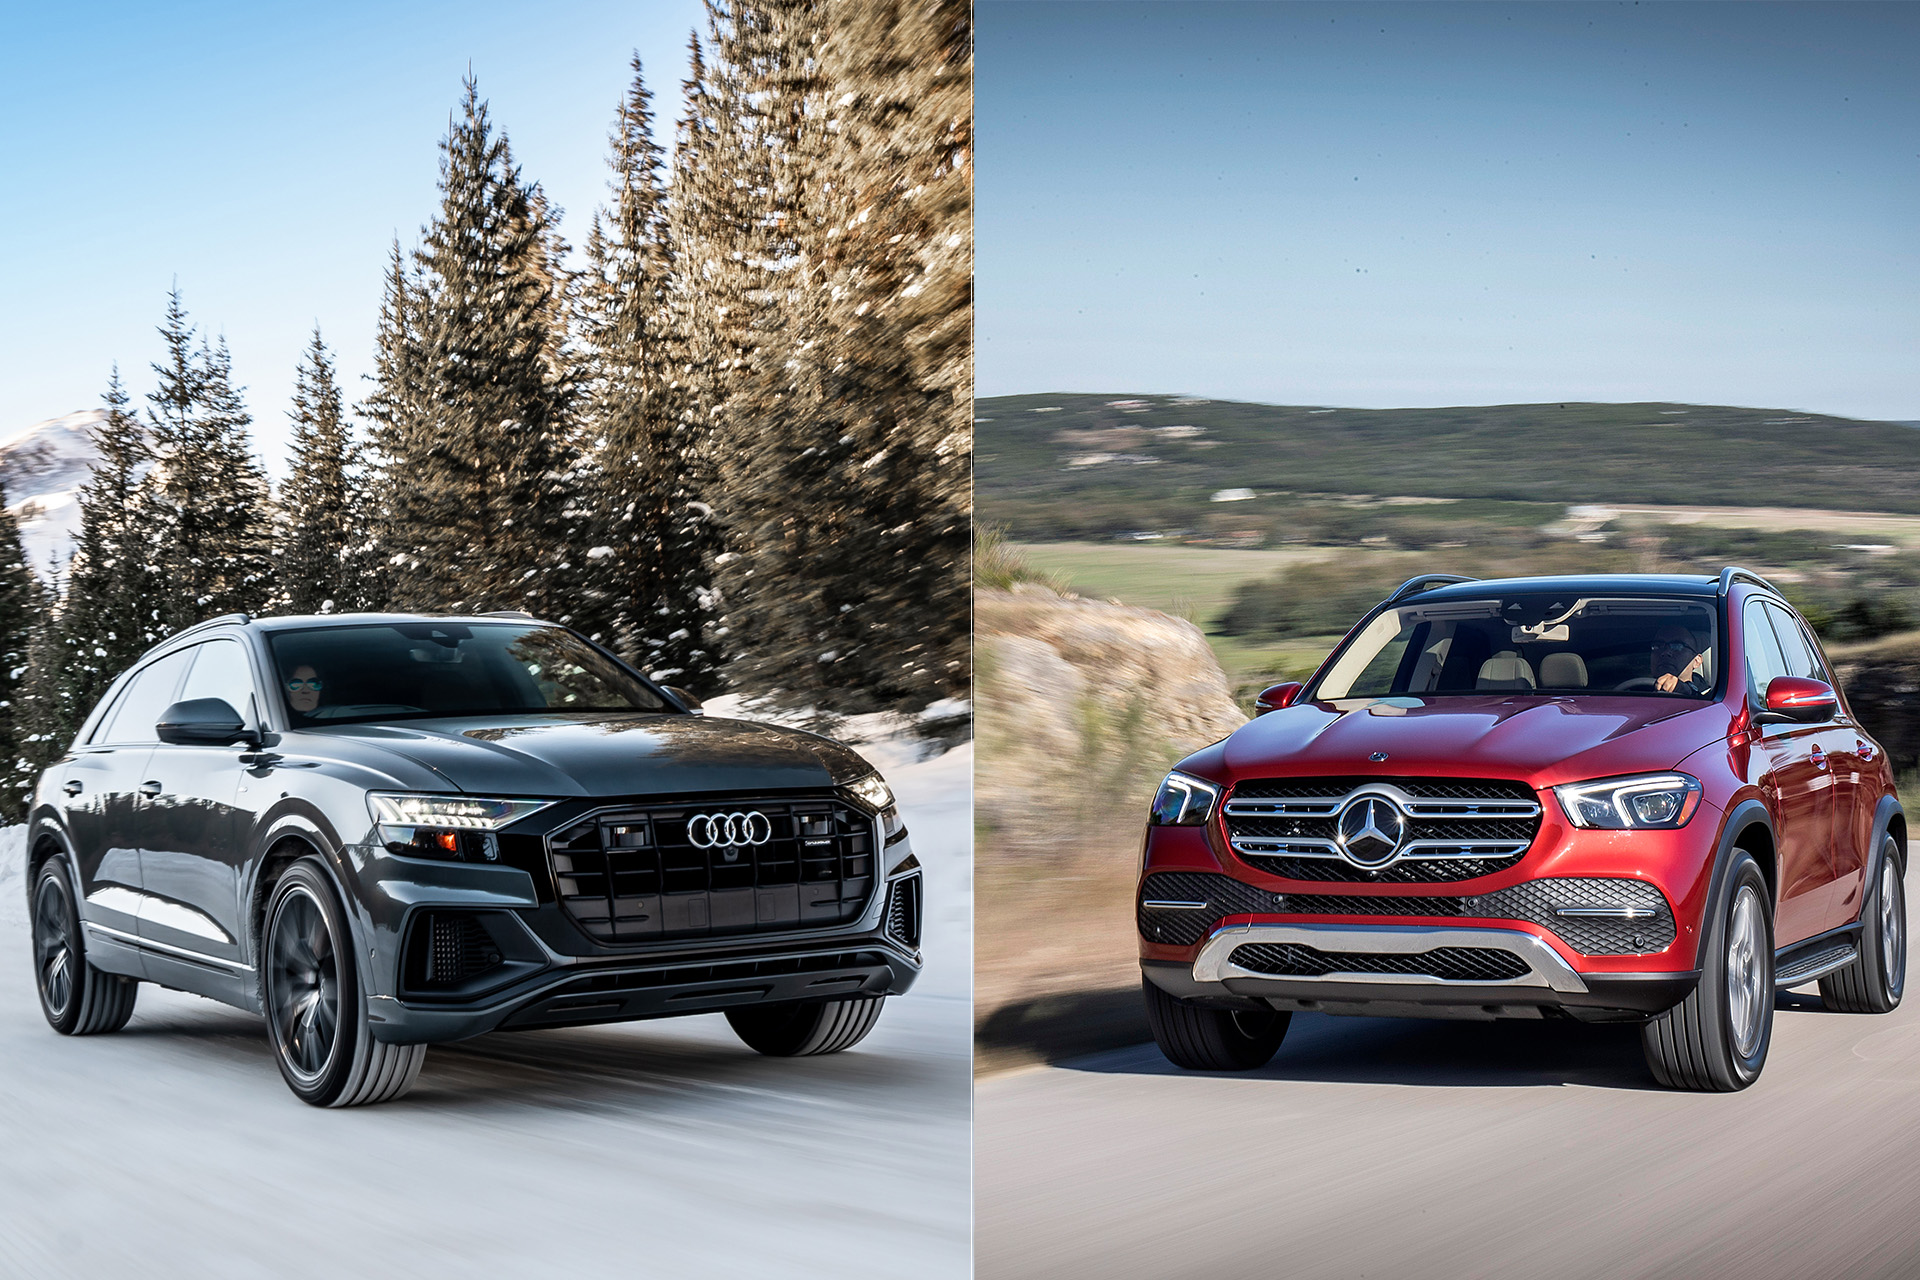 Luxury SUV rumble in the Rockies: 2019 Audi Q8 vs  2020 Mercedes